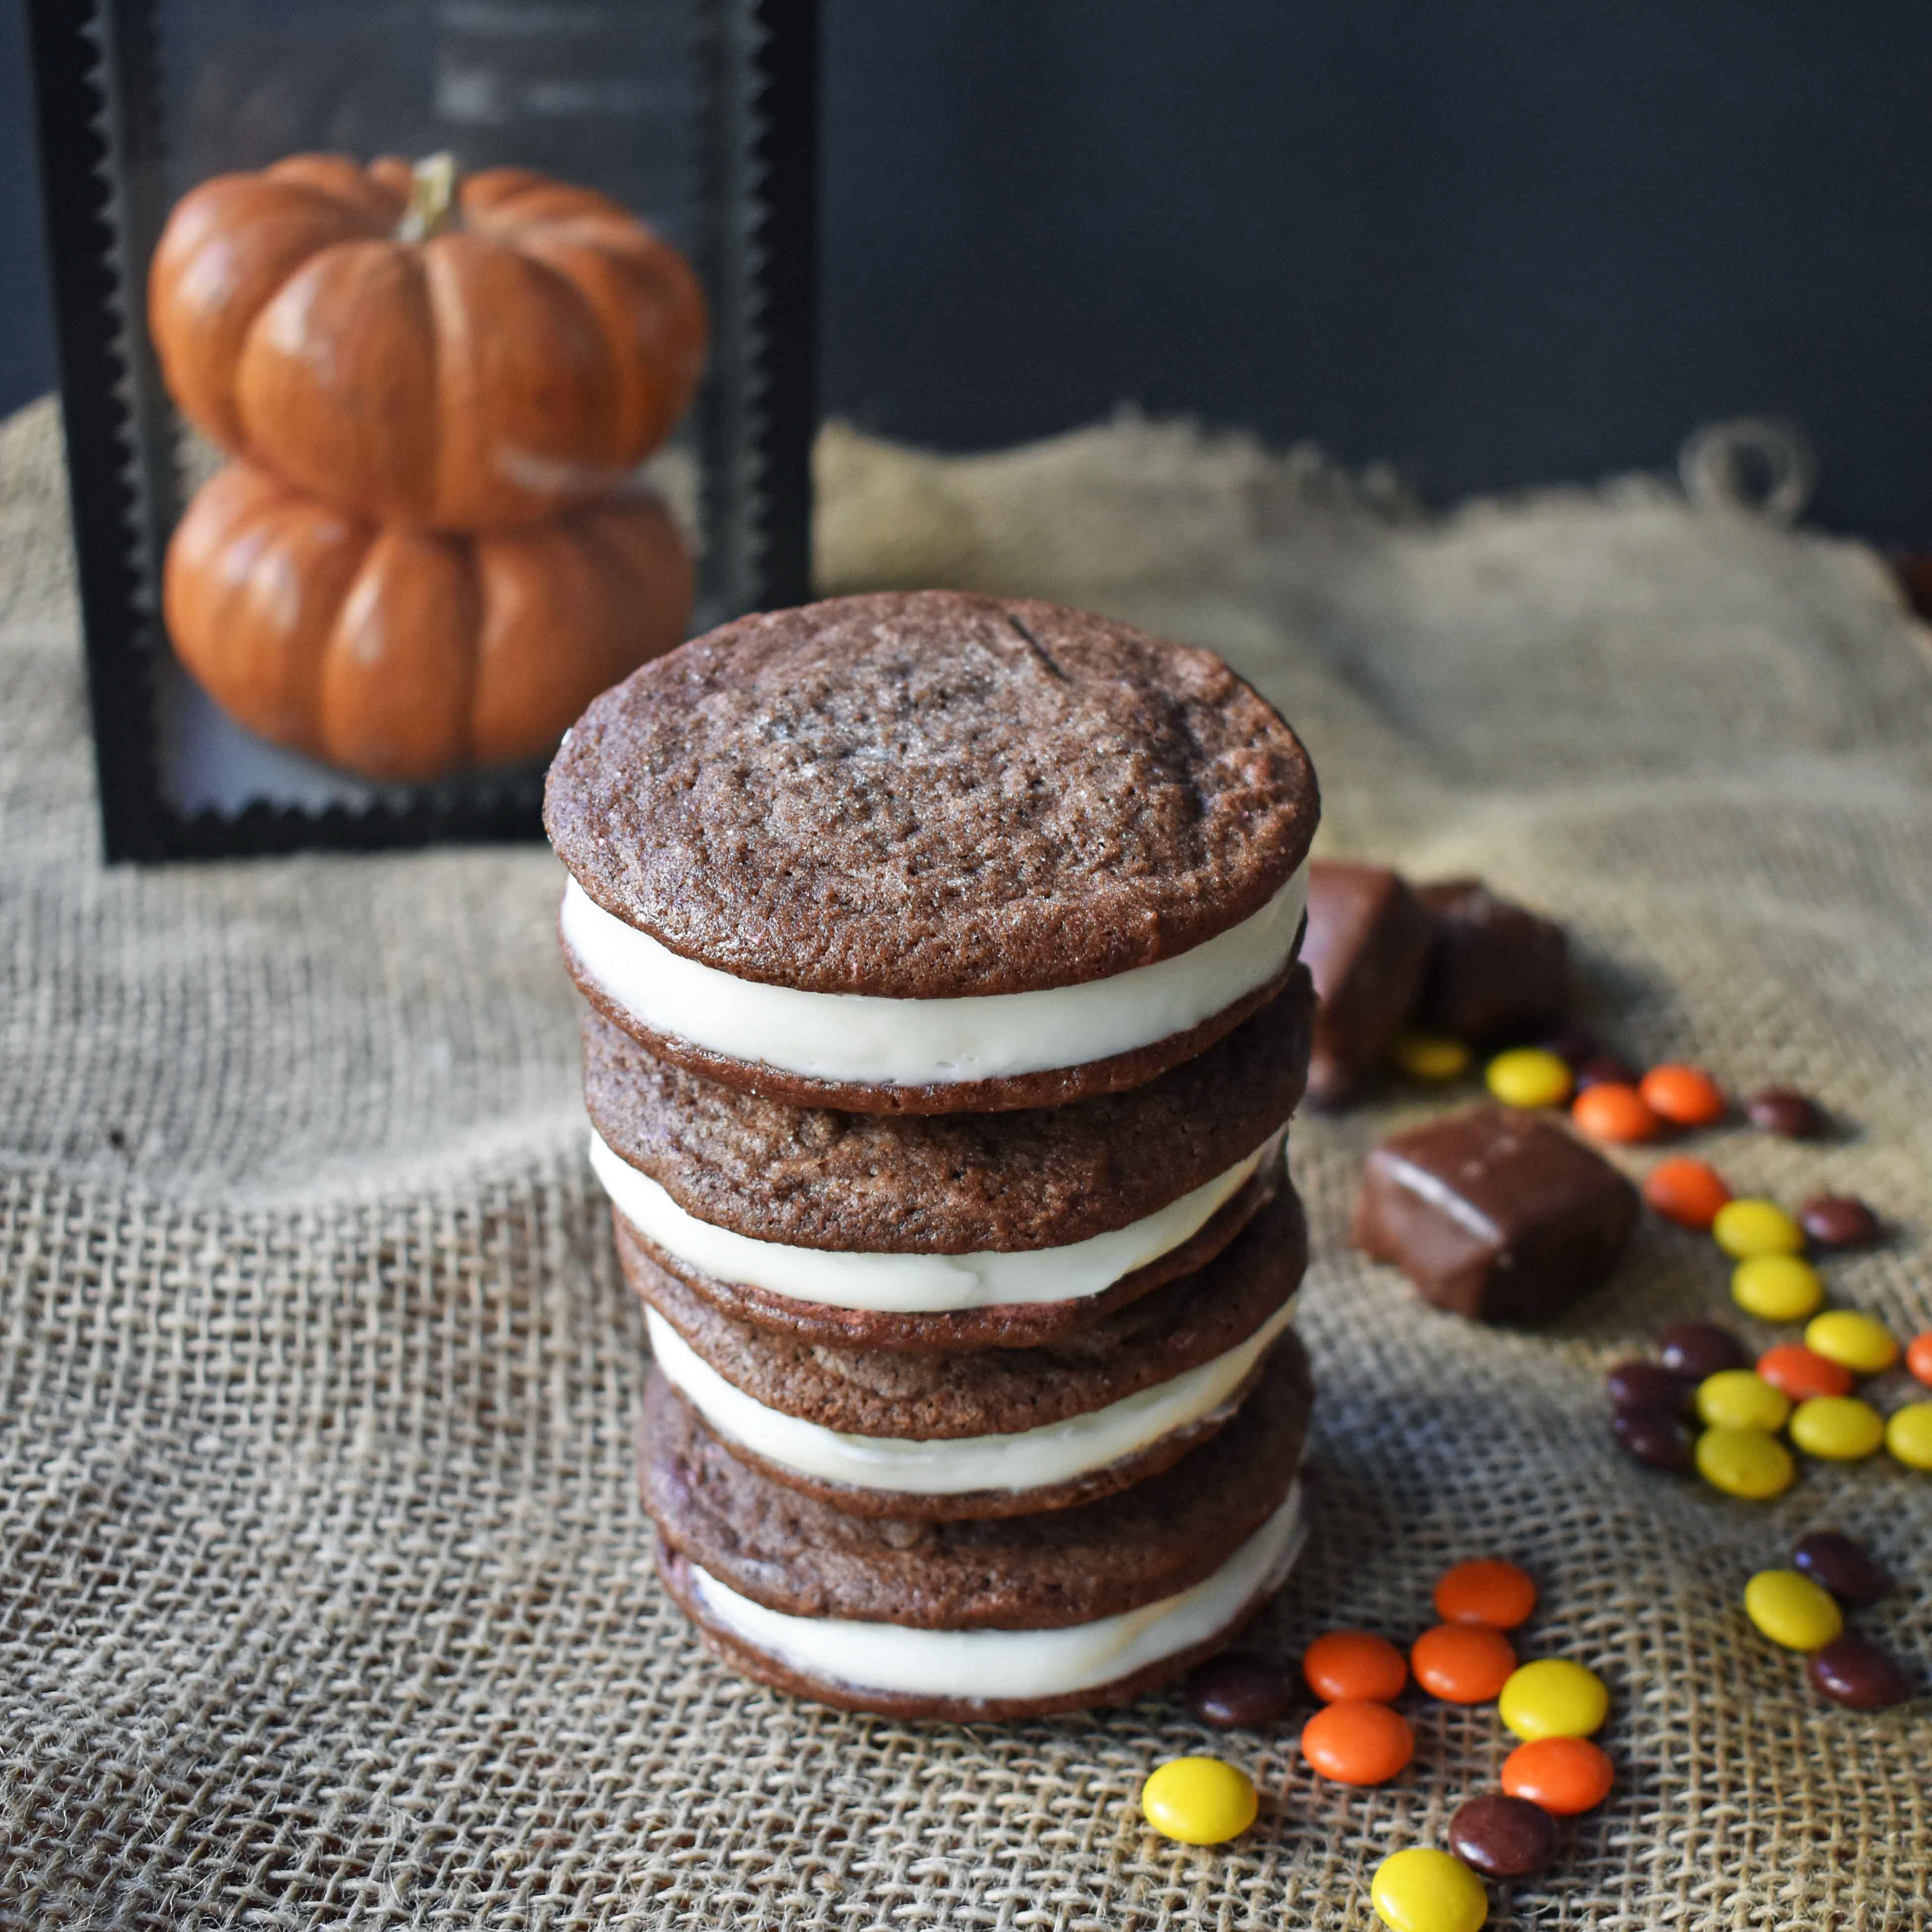 Homemade Oreo Cookies by Modern Honey. Rich Chocolate Cookies filled with Sweet Buttercream Filling. It's Oreos cookies but so much better.